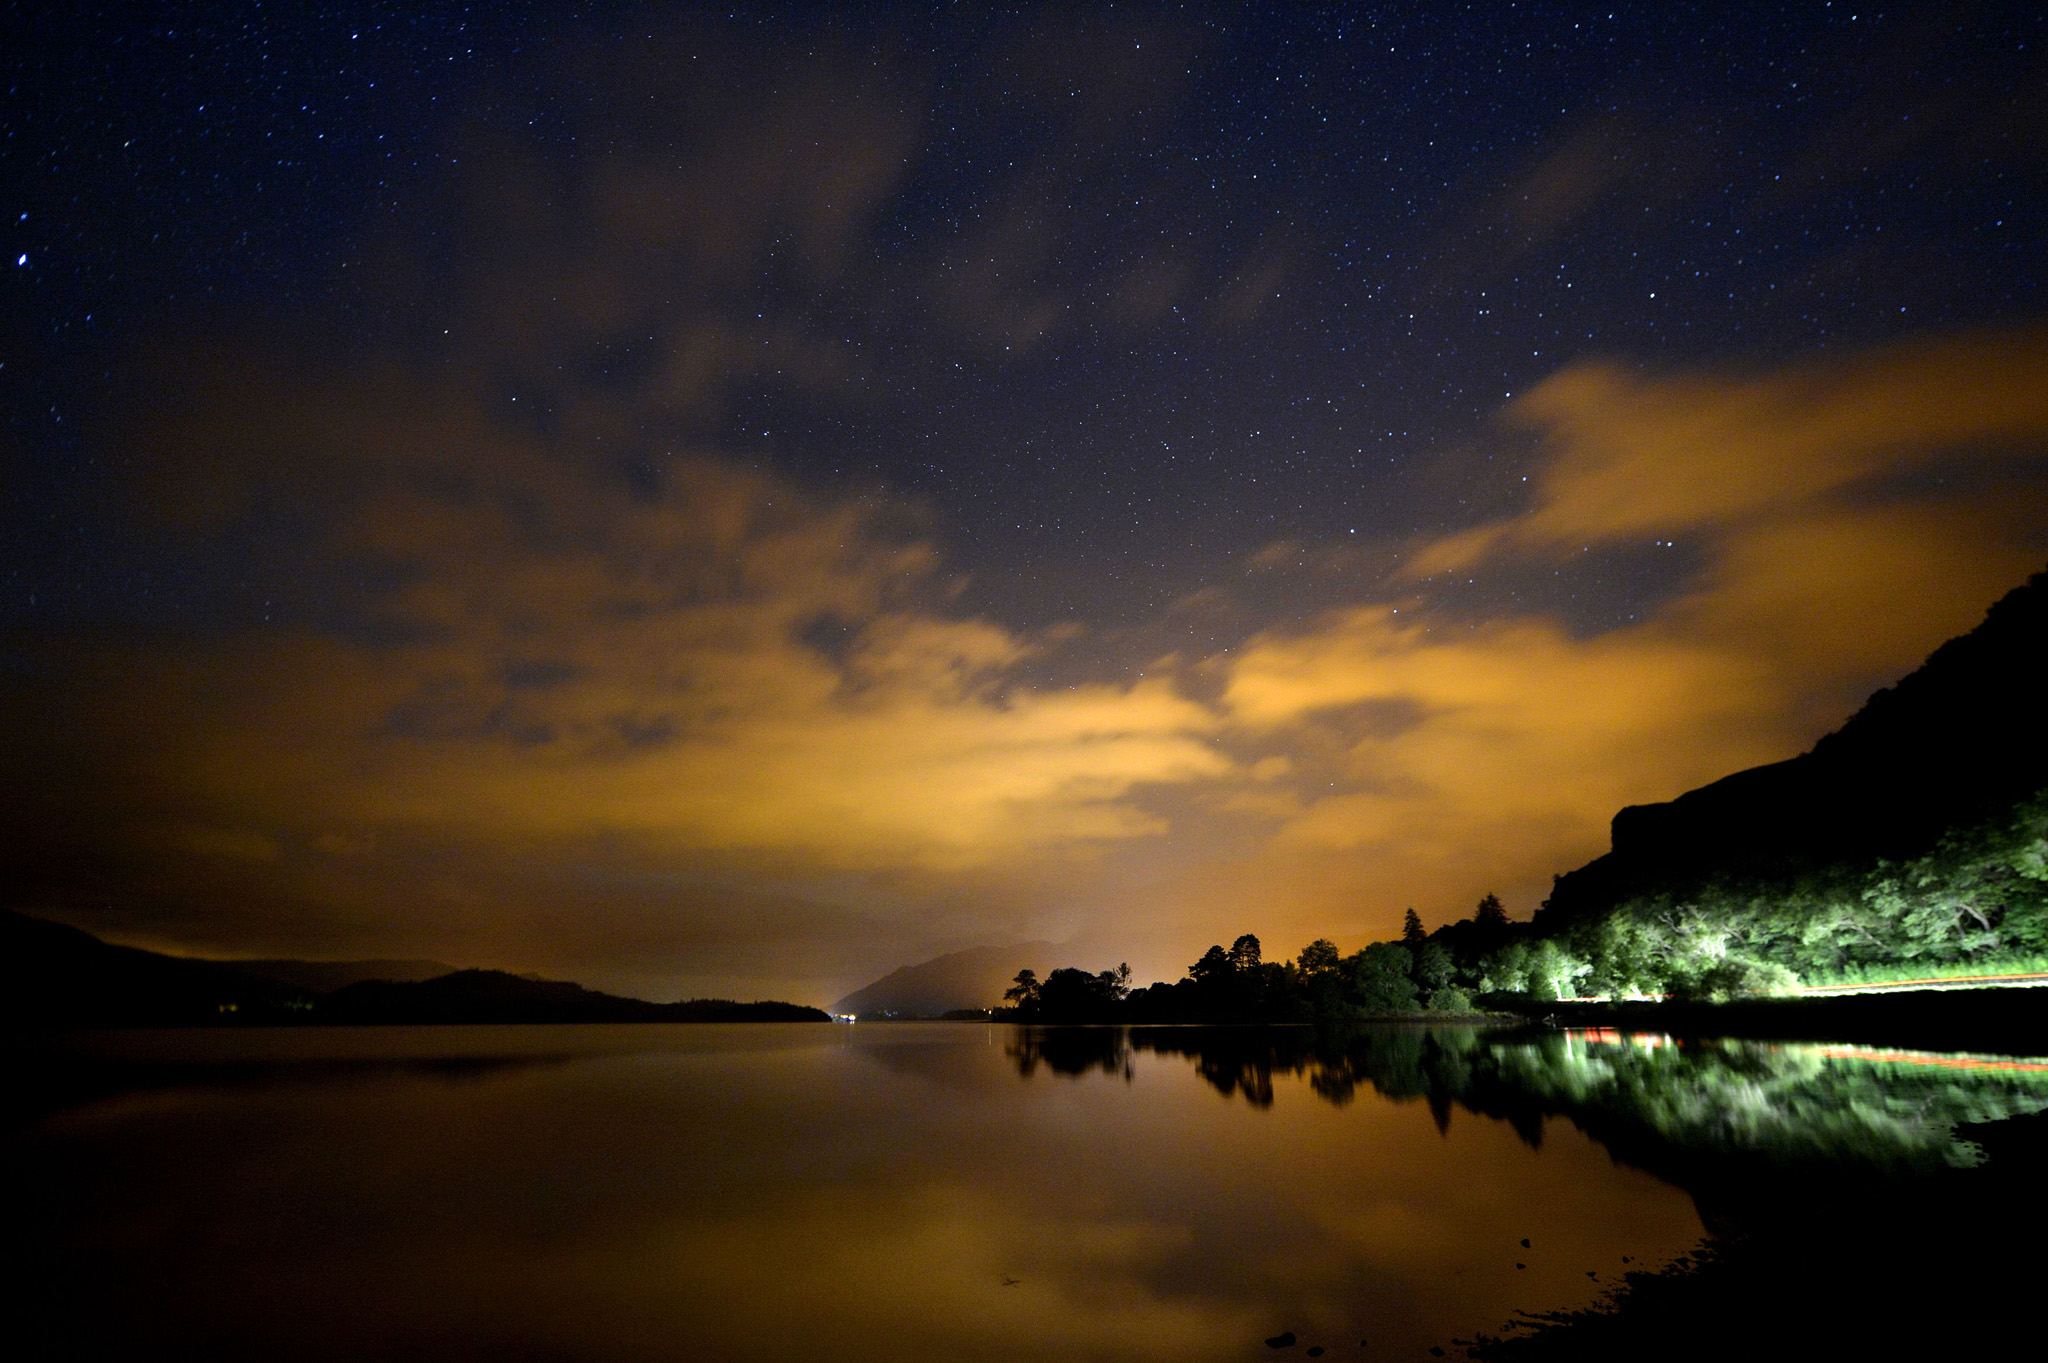 Derwentwater by night...Overnight reflections in Derwentwater in the Lake District near Keswick  PRESS ASSOCIATION Photo. Picture date: Thursday September 10, 2015. Photo credit should read: Owen Humphreys/PA Wire